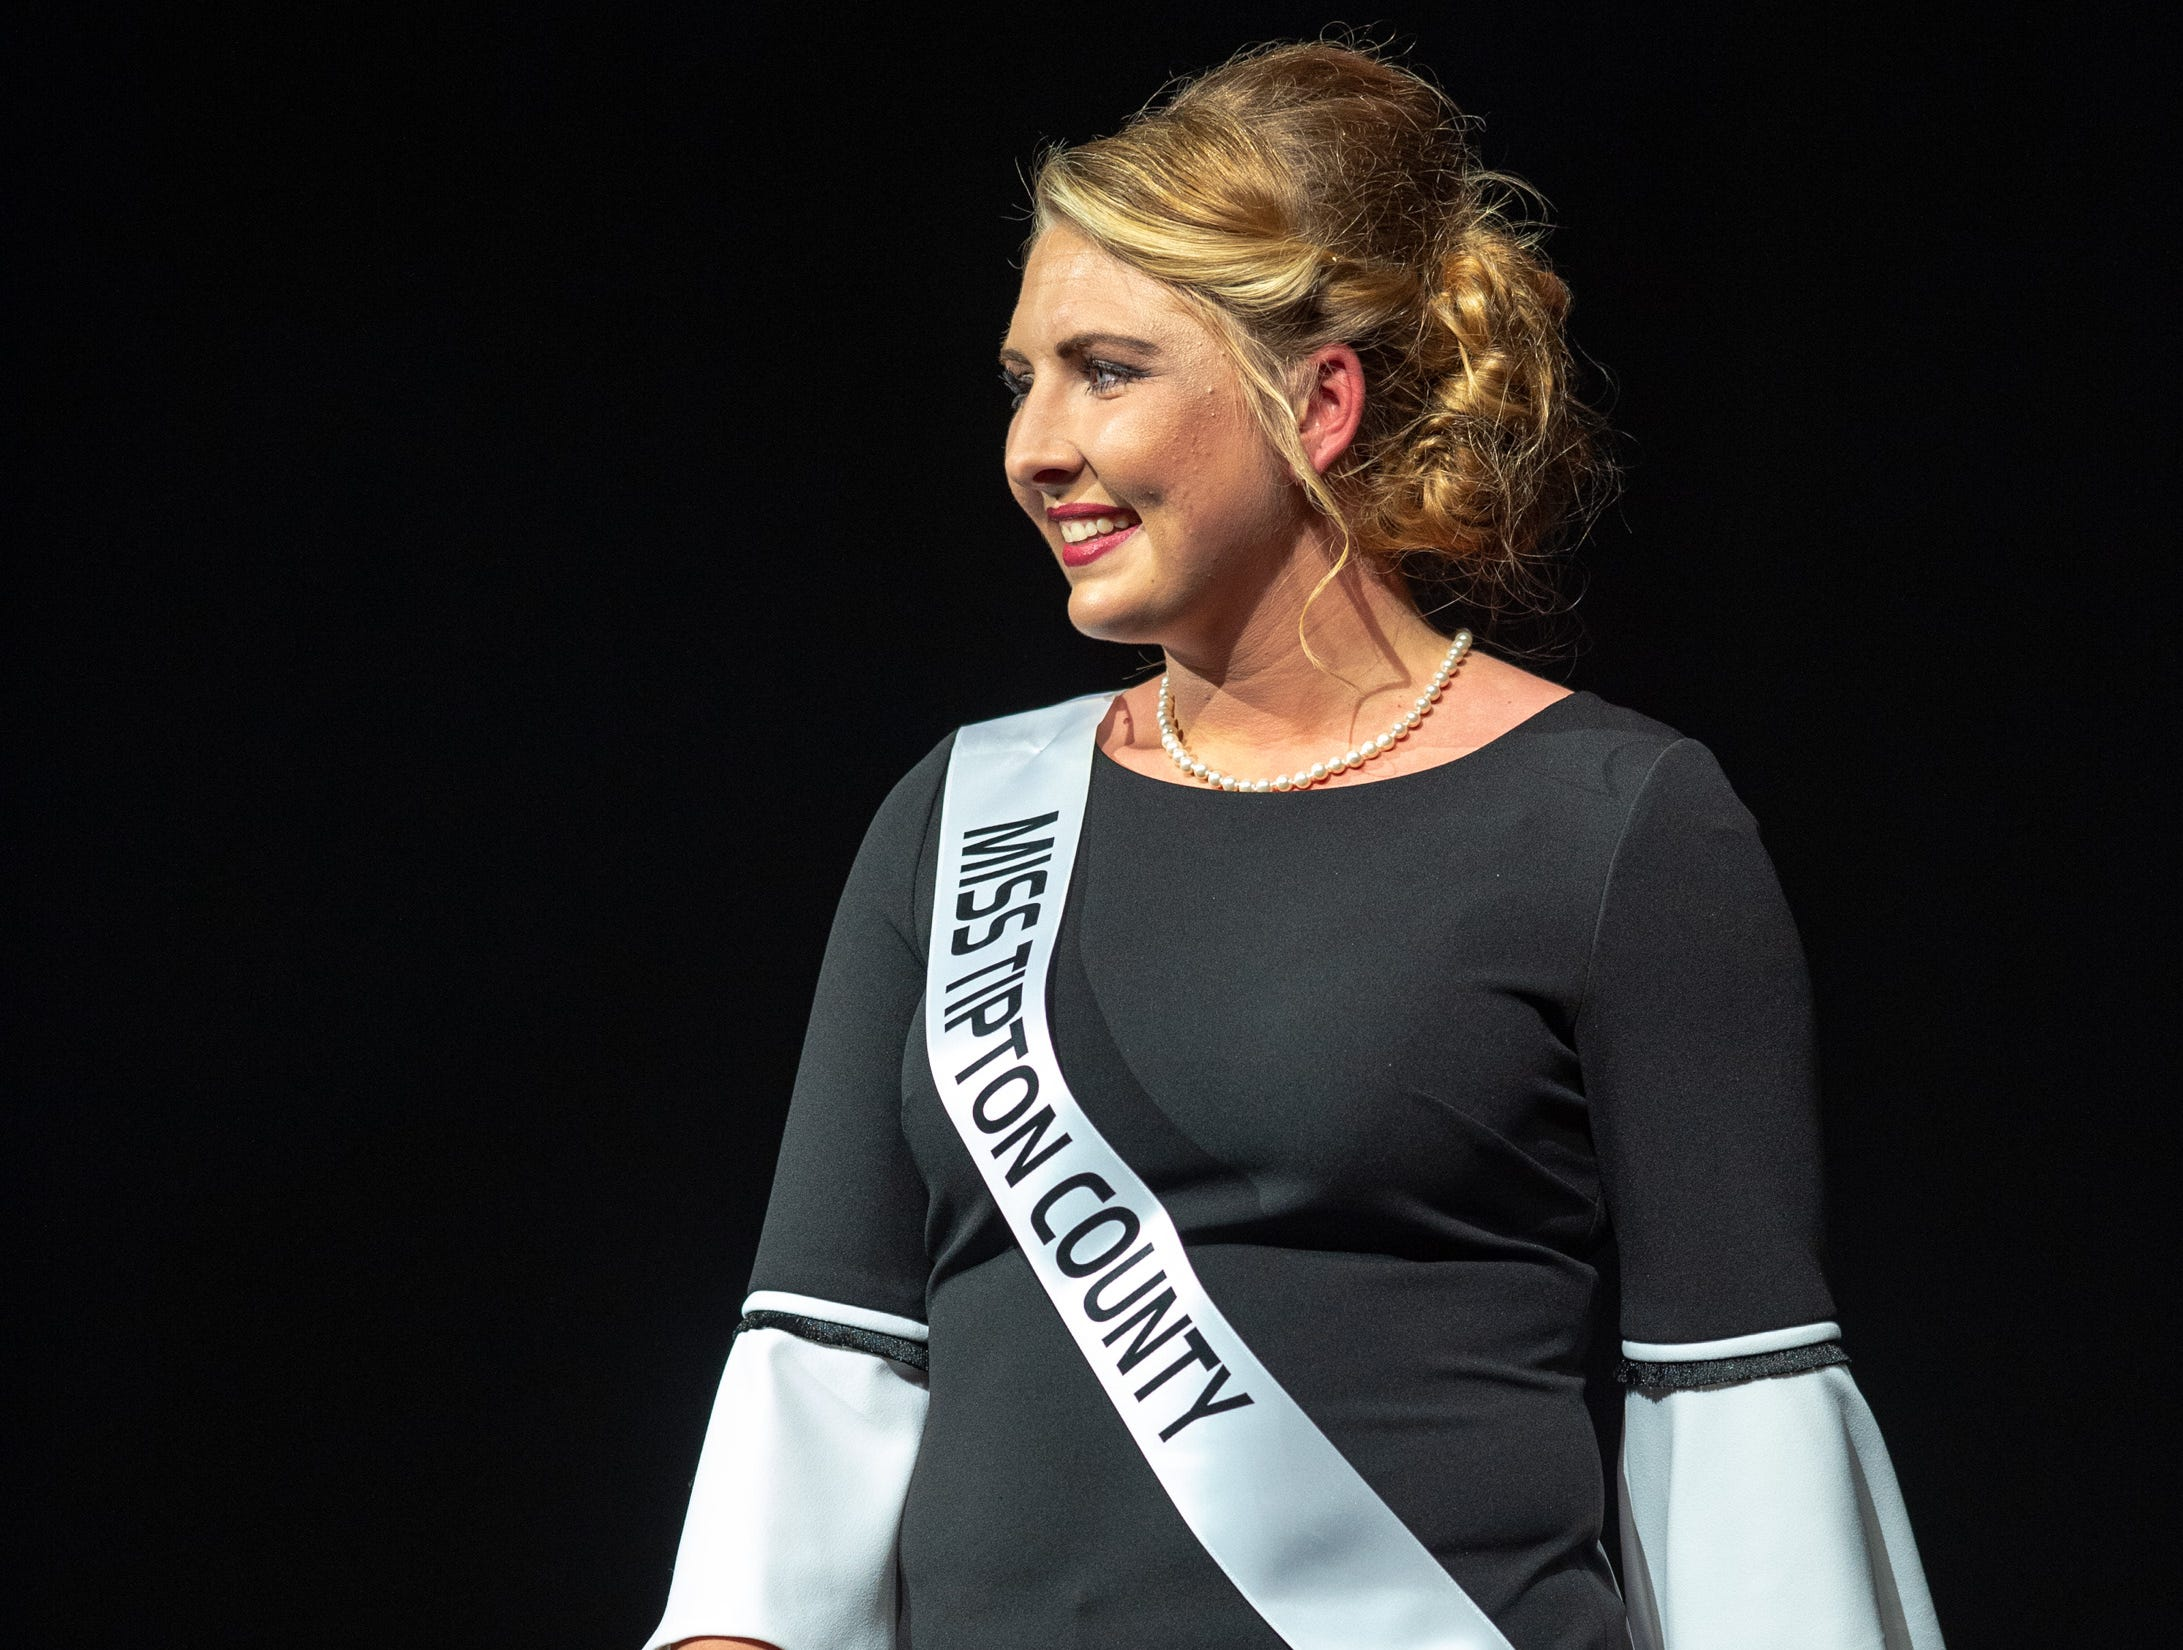 Miss Tipton County, Sylvia Harris, during the 61st Indiana State Fair Queen Pageant at the Indiana State Fairgrounds in Indianapolis on Sunday, Jan. 6, 2019.